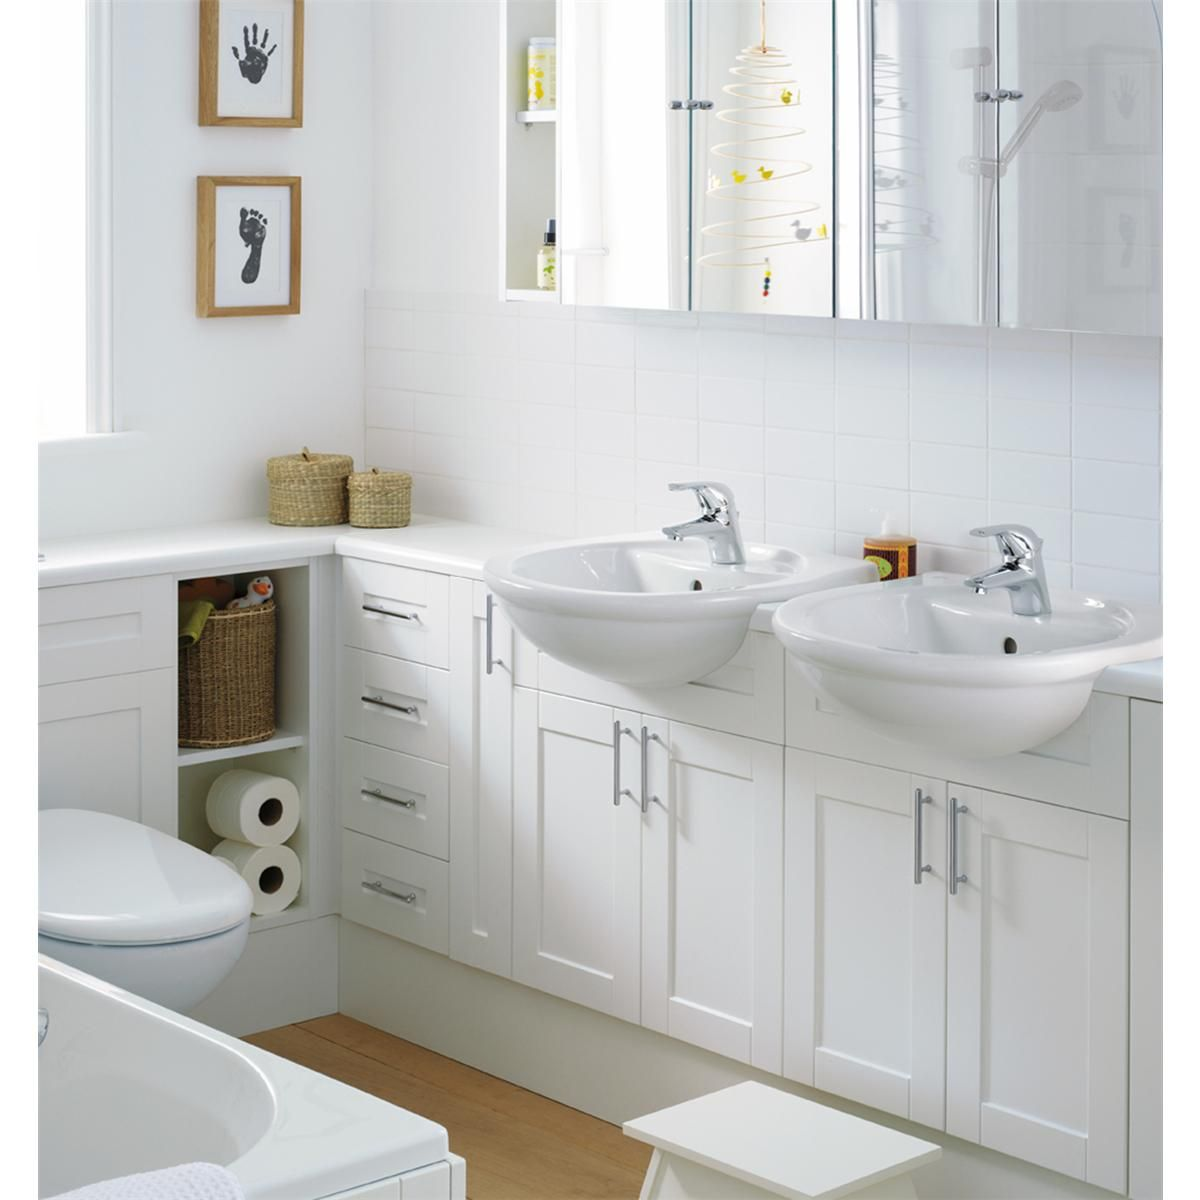 Small White Ikea Bathroom Vanity Units Bathroom Storage Ideas ...